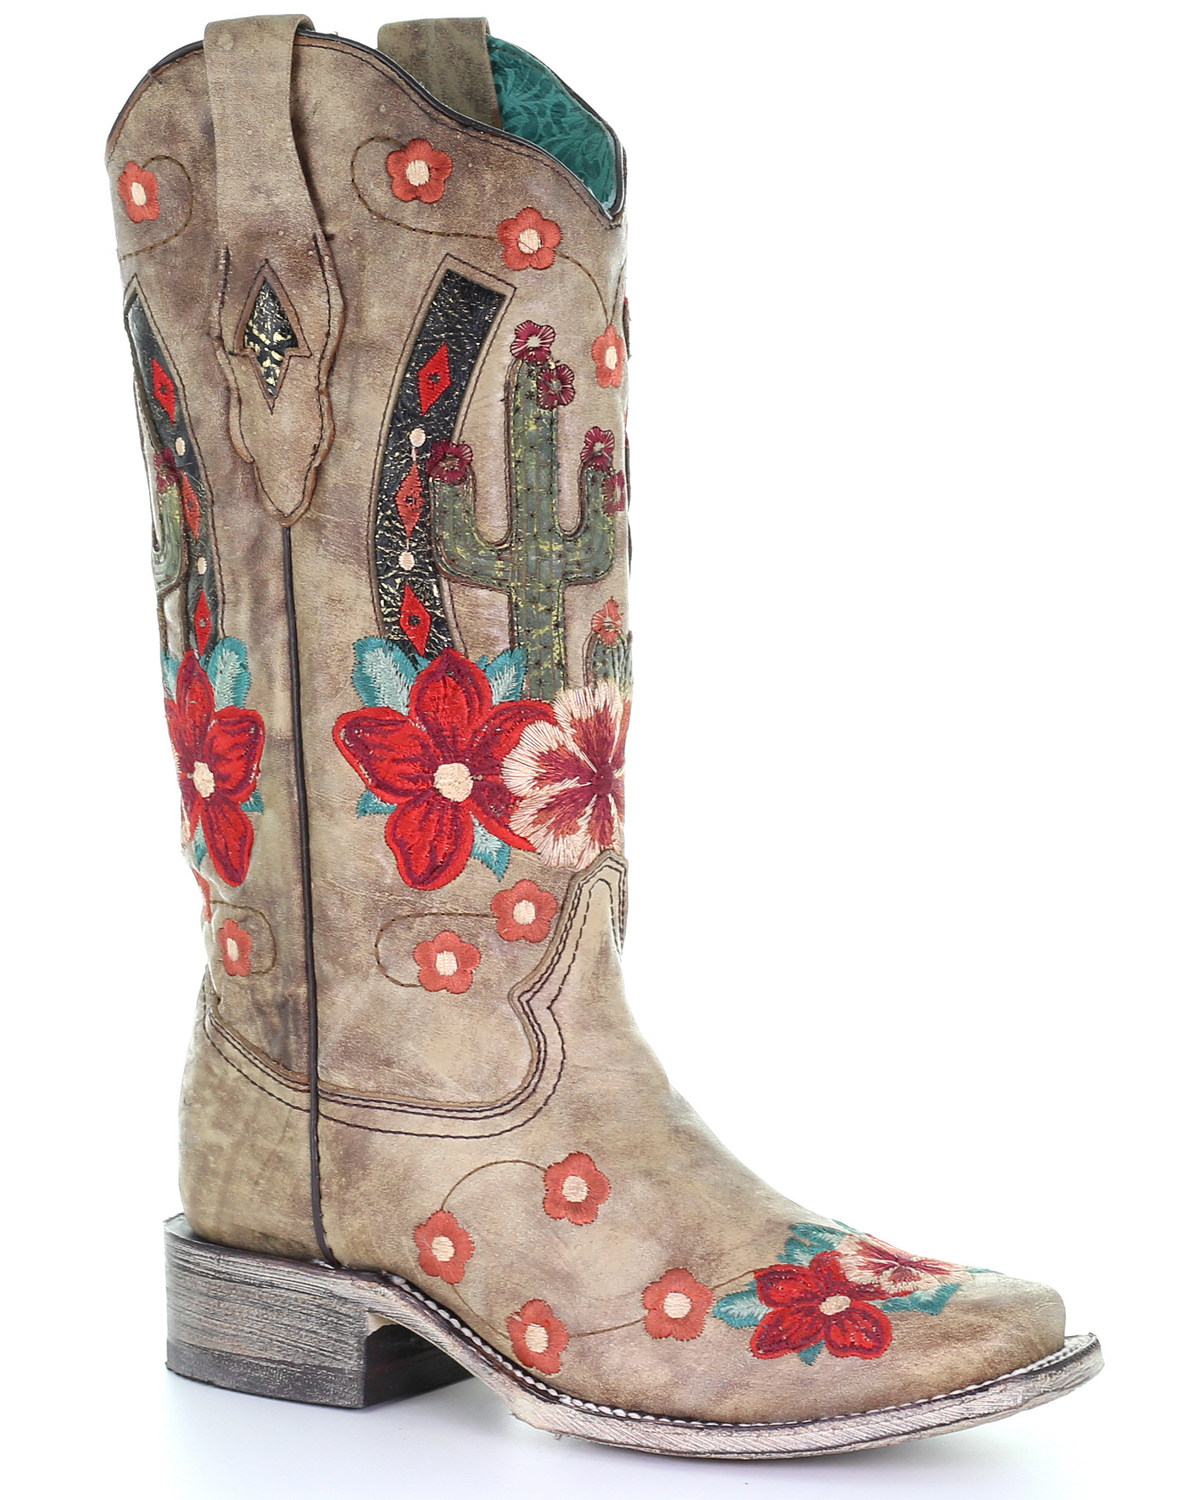 9d78bfe56a0 Corral Women's Cactus Floral Embroidery Overlay Western Boots - Narrow  Square Toe